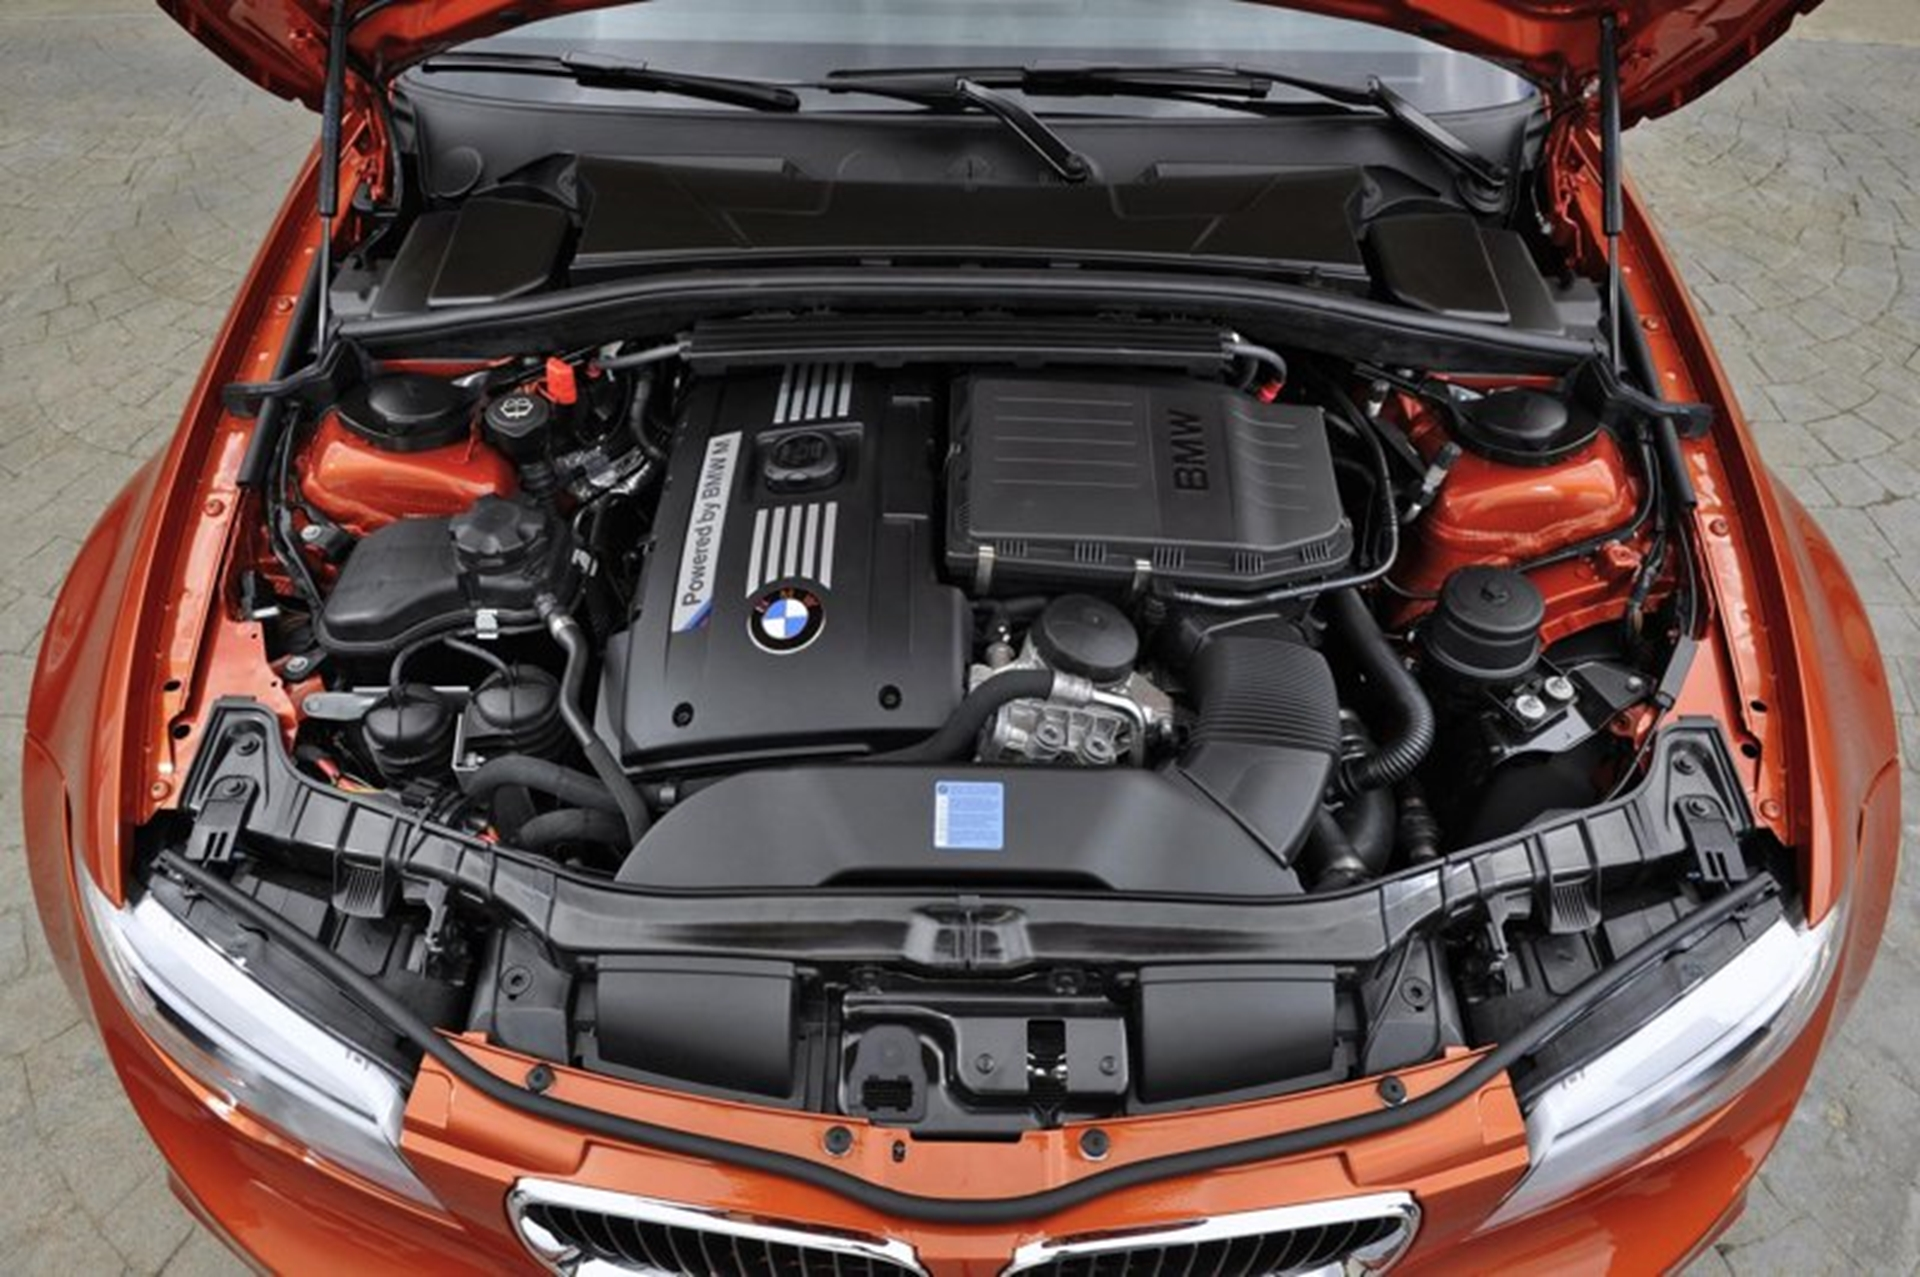 The new BMW 1 Series M Coupe Engine